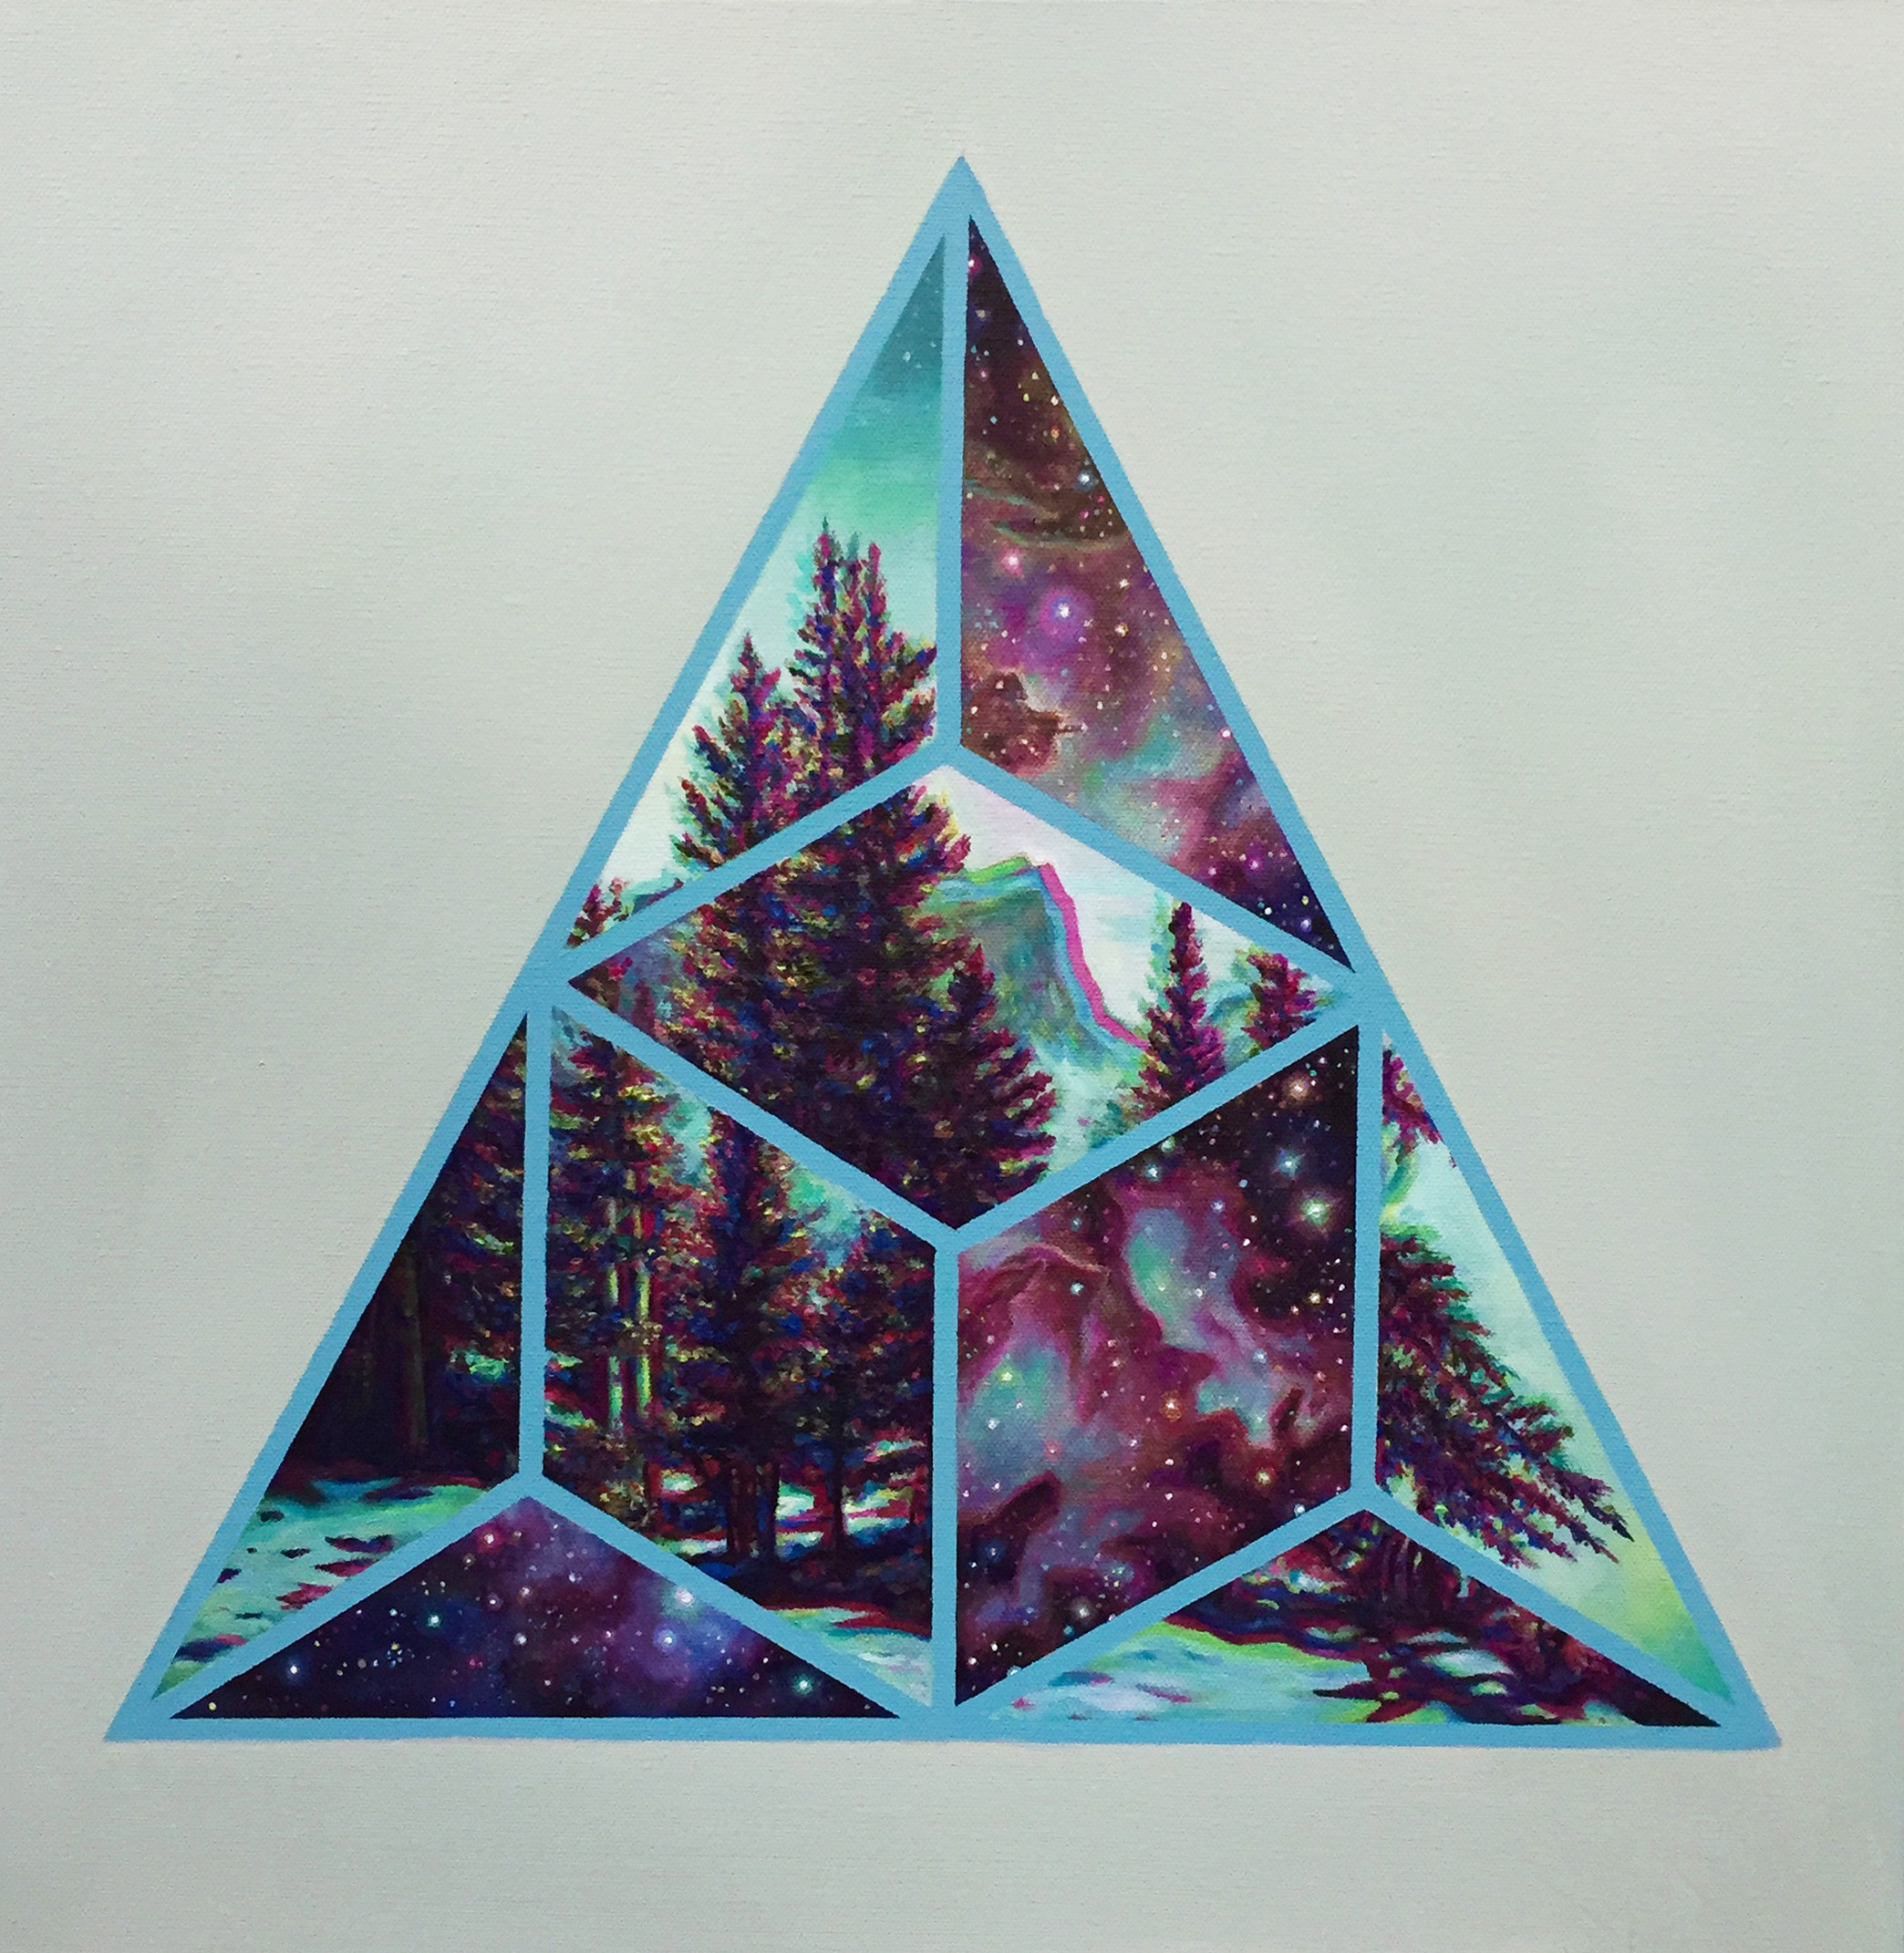 new_2018_triangle illusion christie snelson_web.jpg